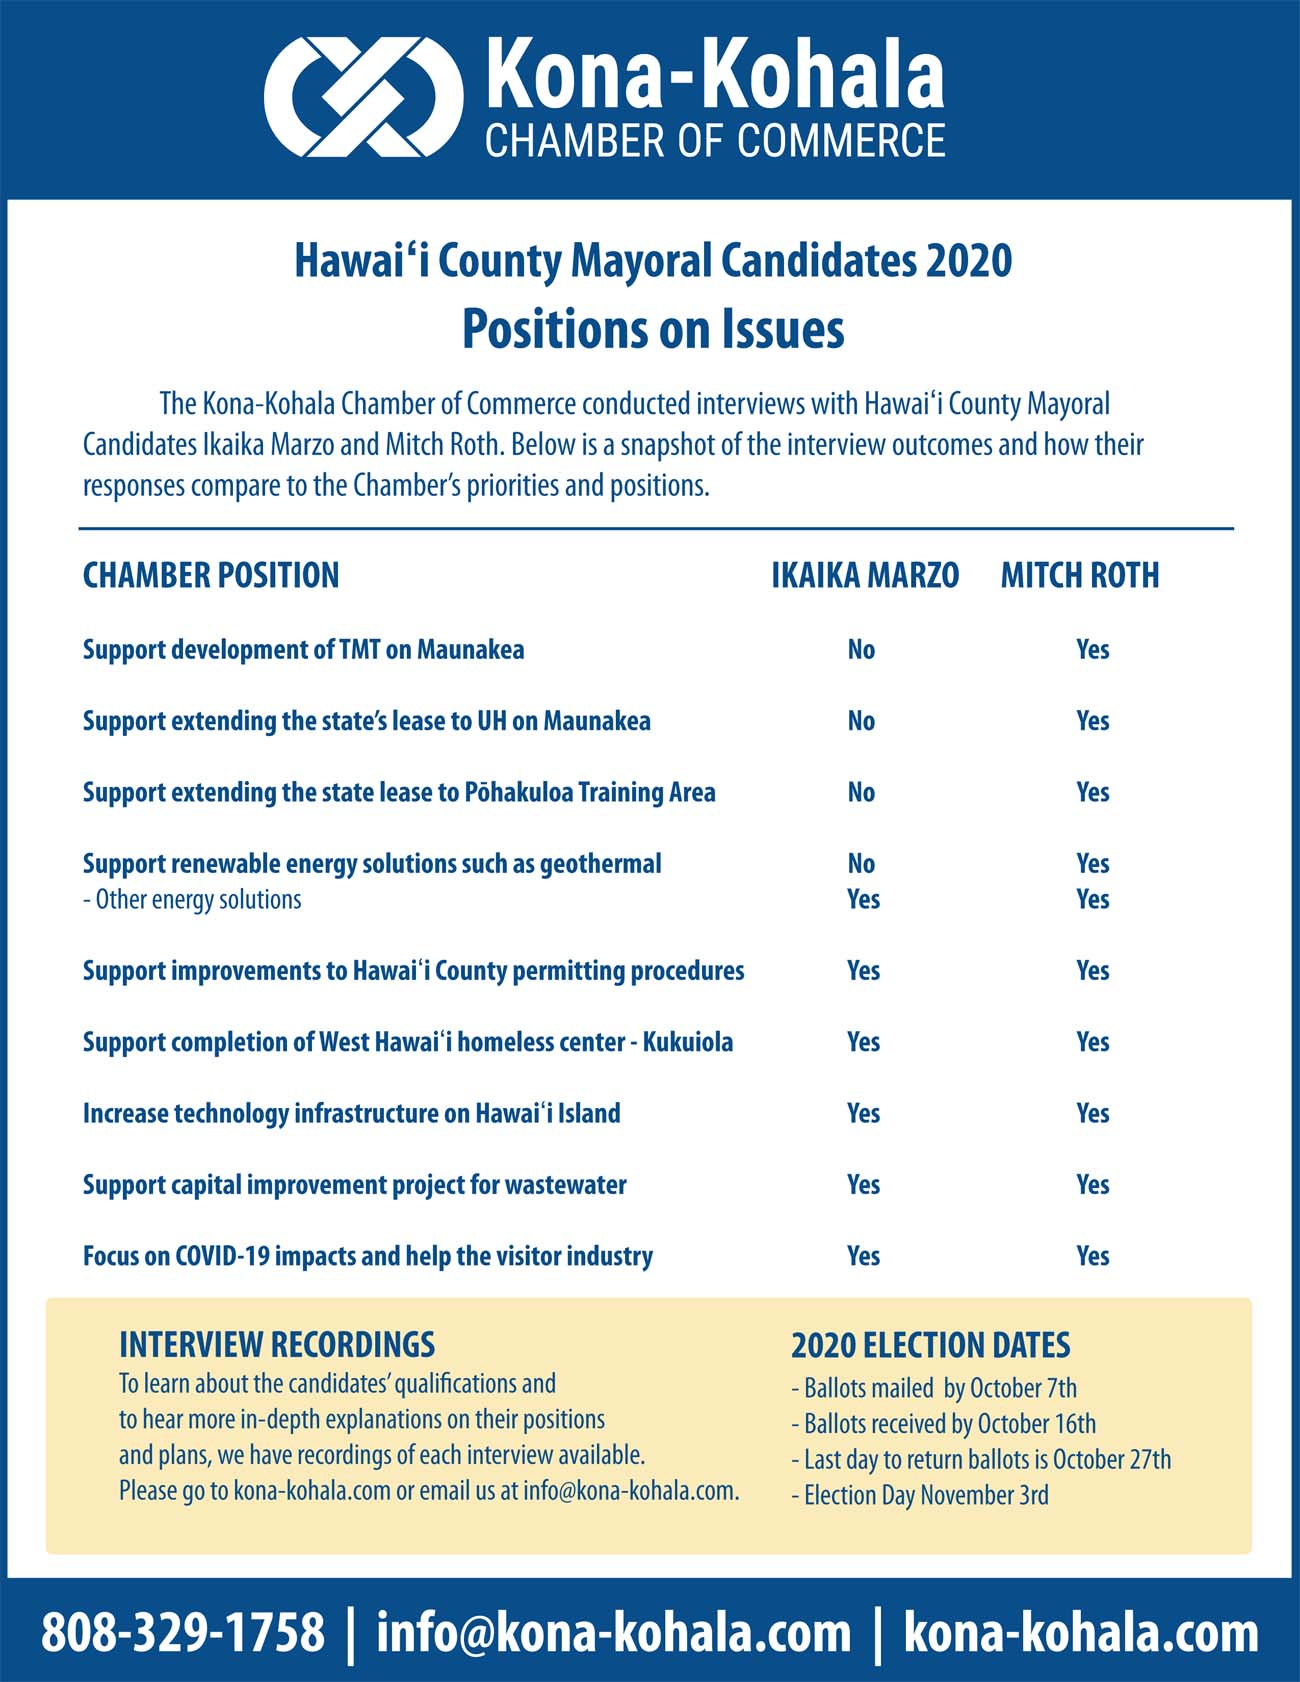 Mayoral-Candidate-Interview-Outcomes-b.jpg